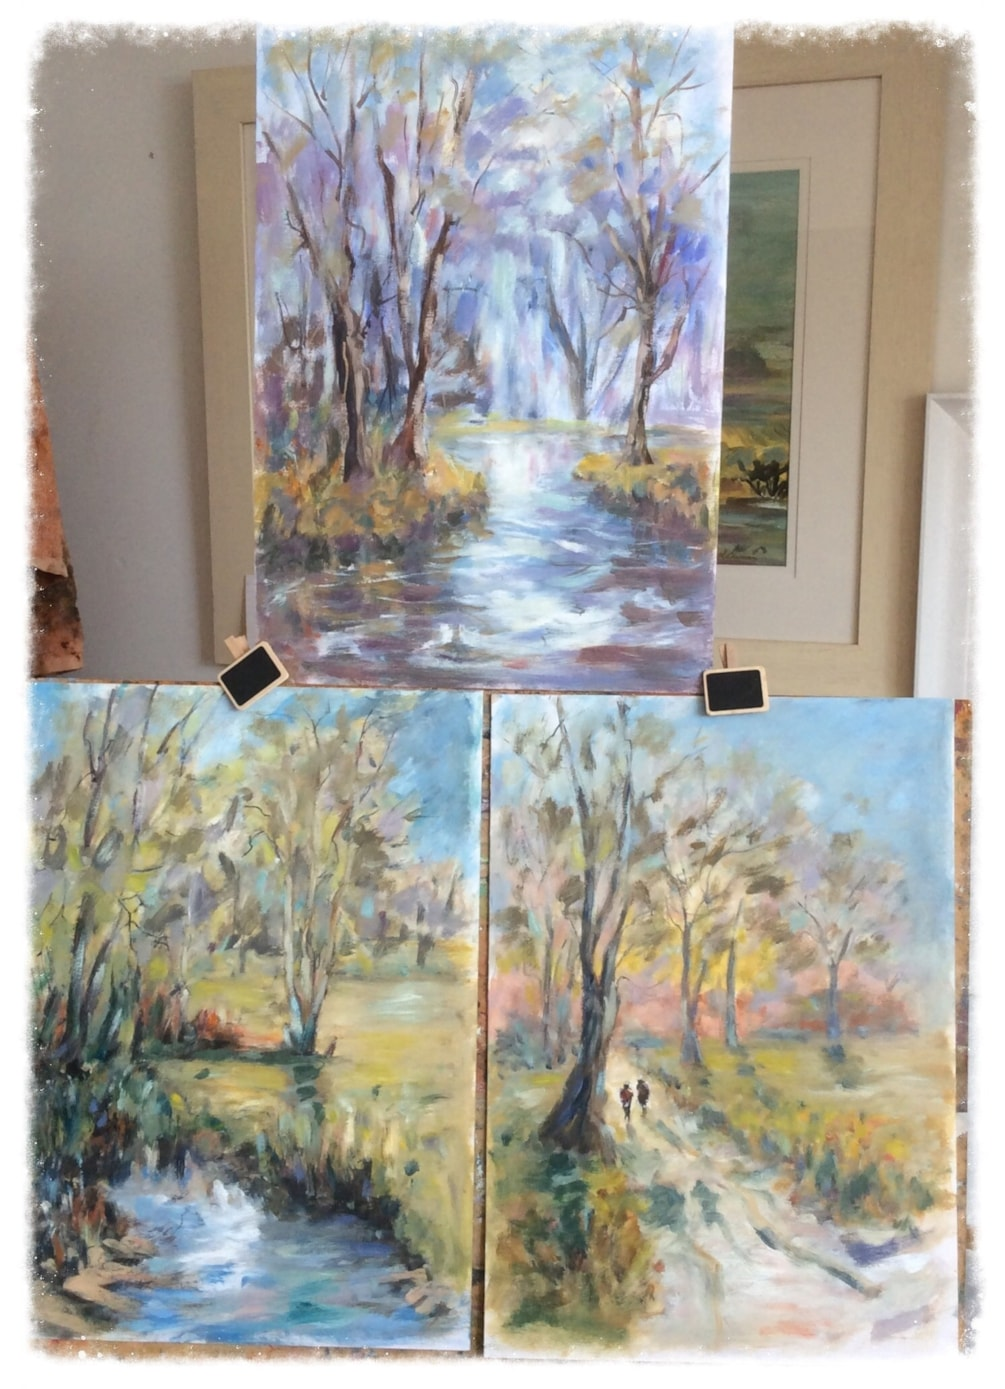 Re-working of paintings previously posted!